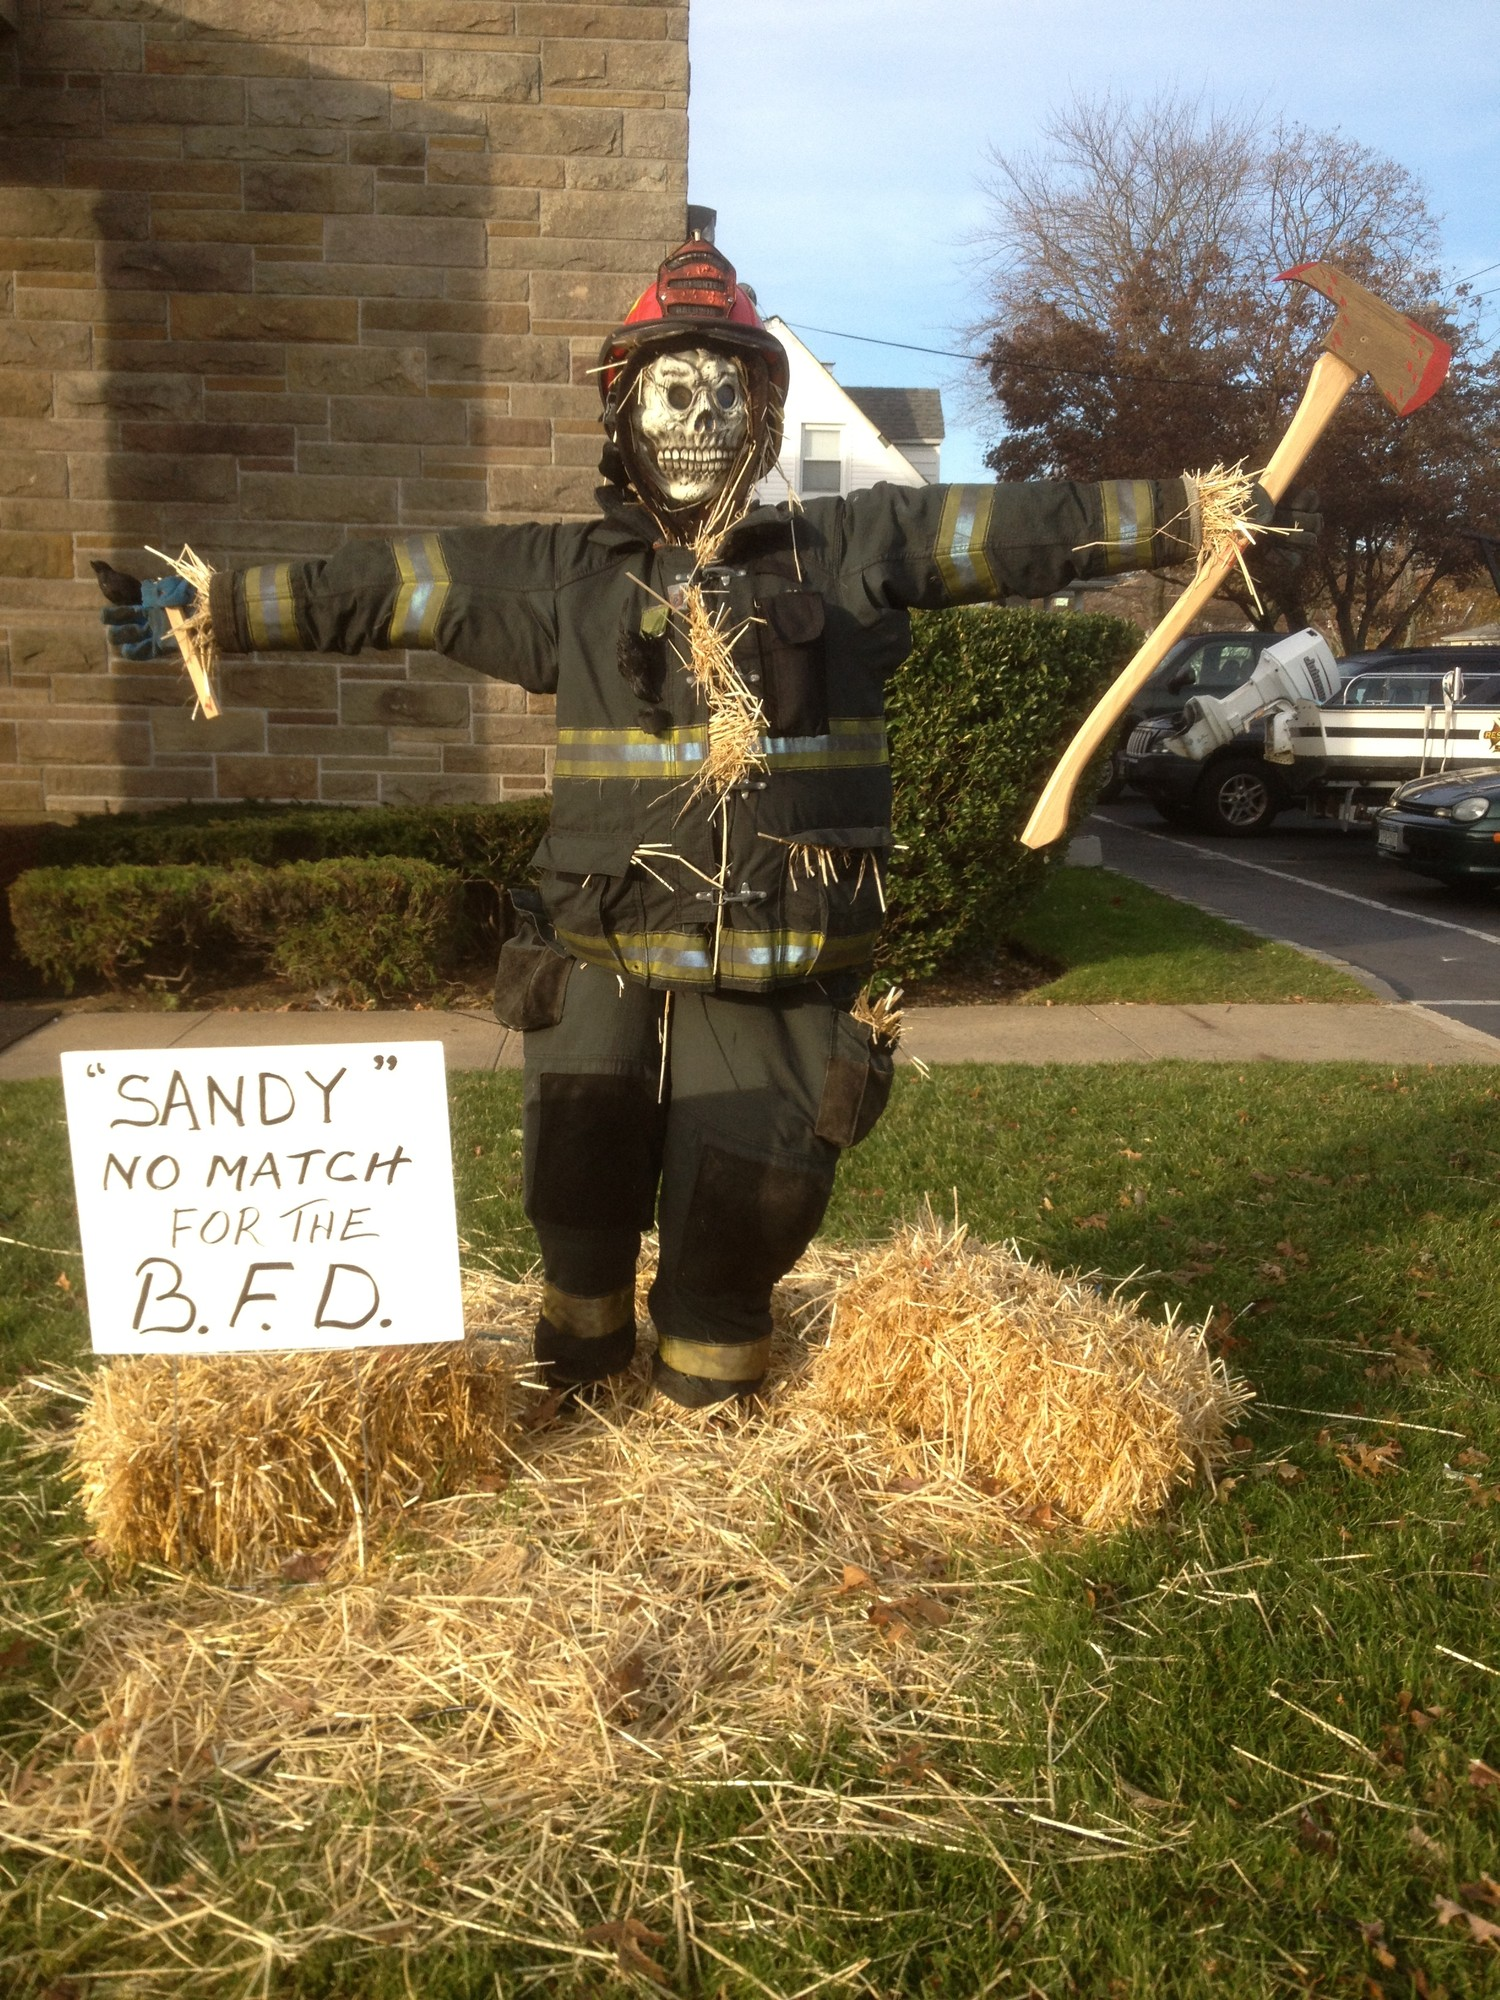 The Baldwin Civic Association